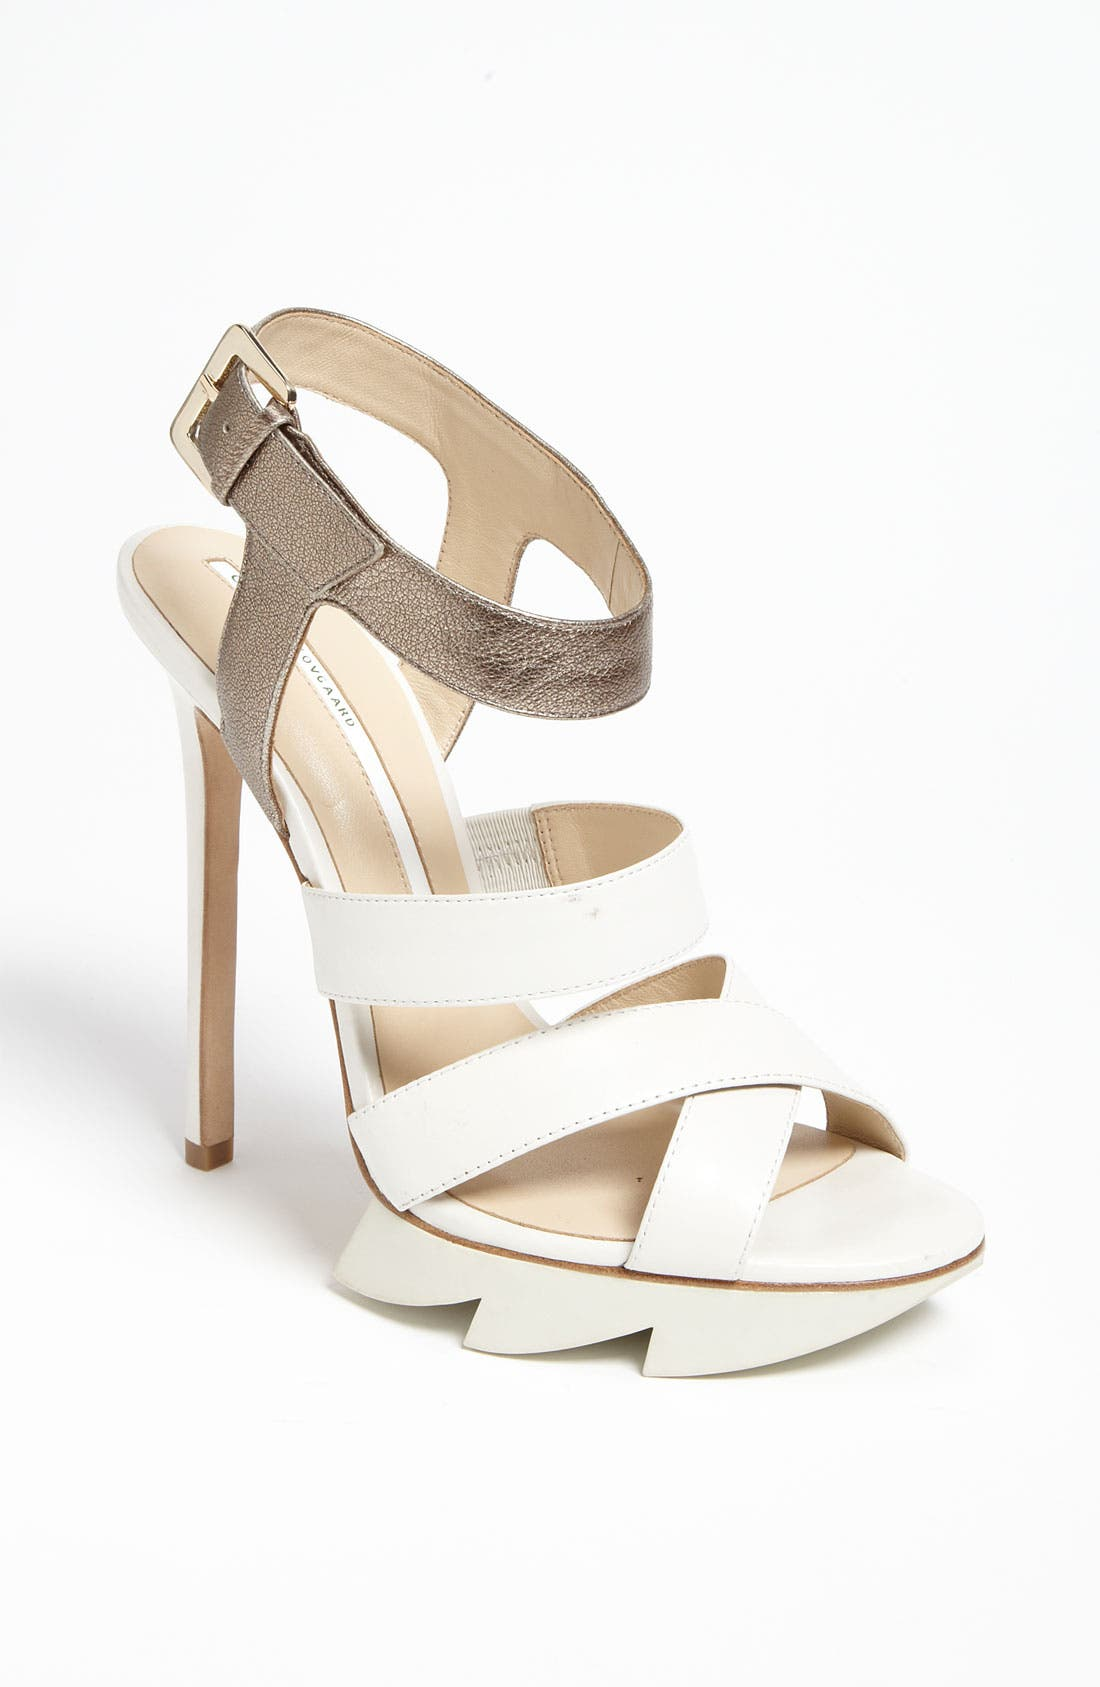 Alternate Image 1 Selected - Camilla Skovgaard High Heel Sandal